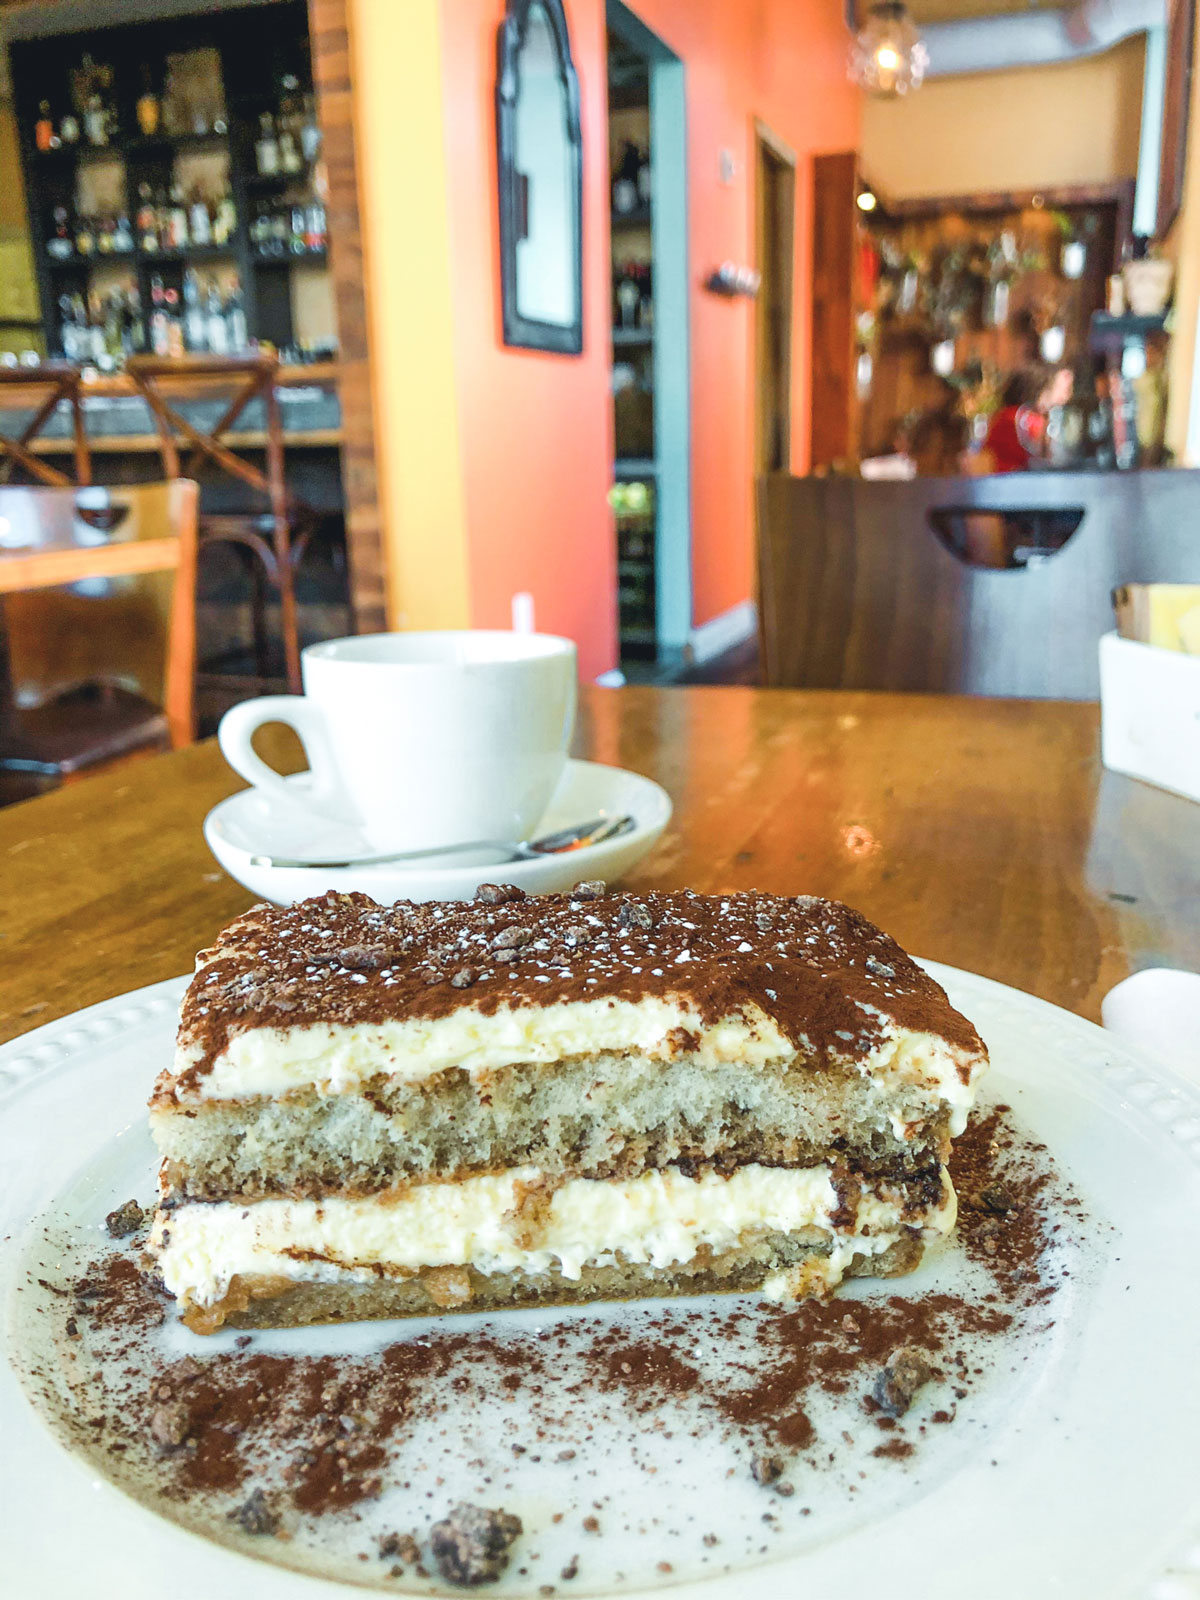 A slice of tiramisu resting on a white dish.